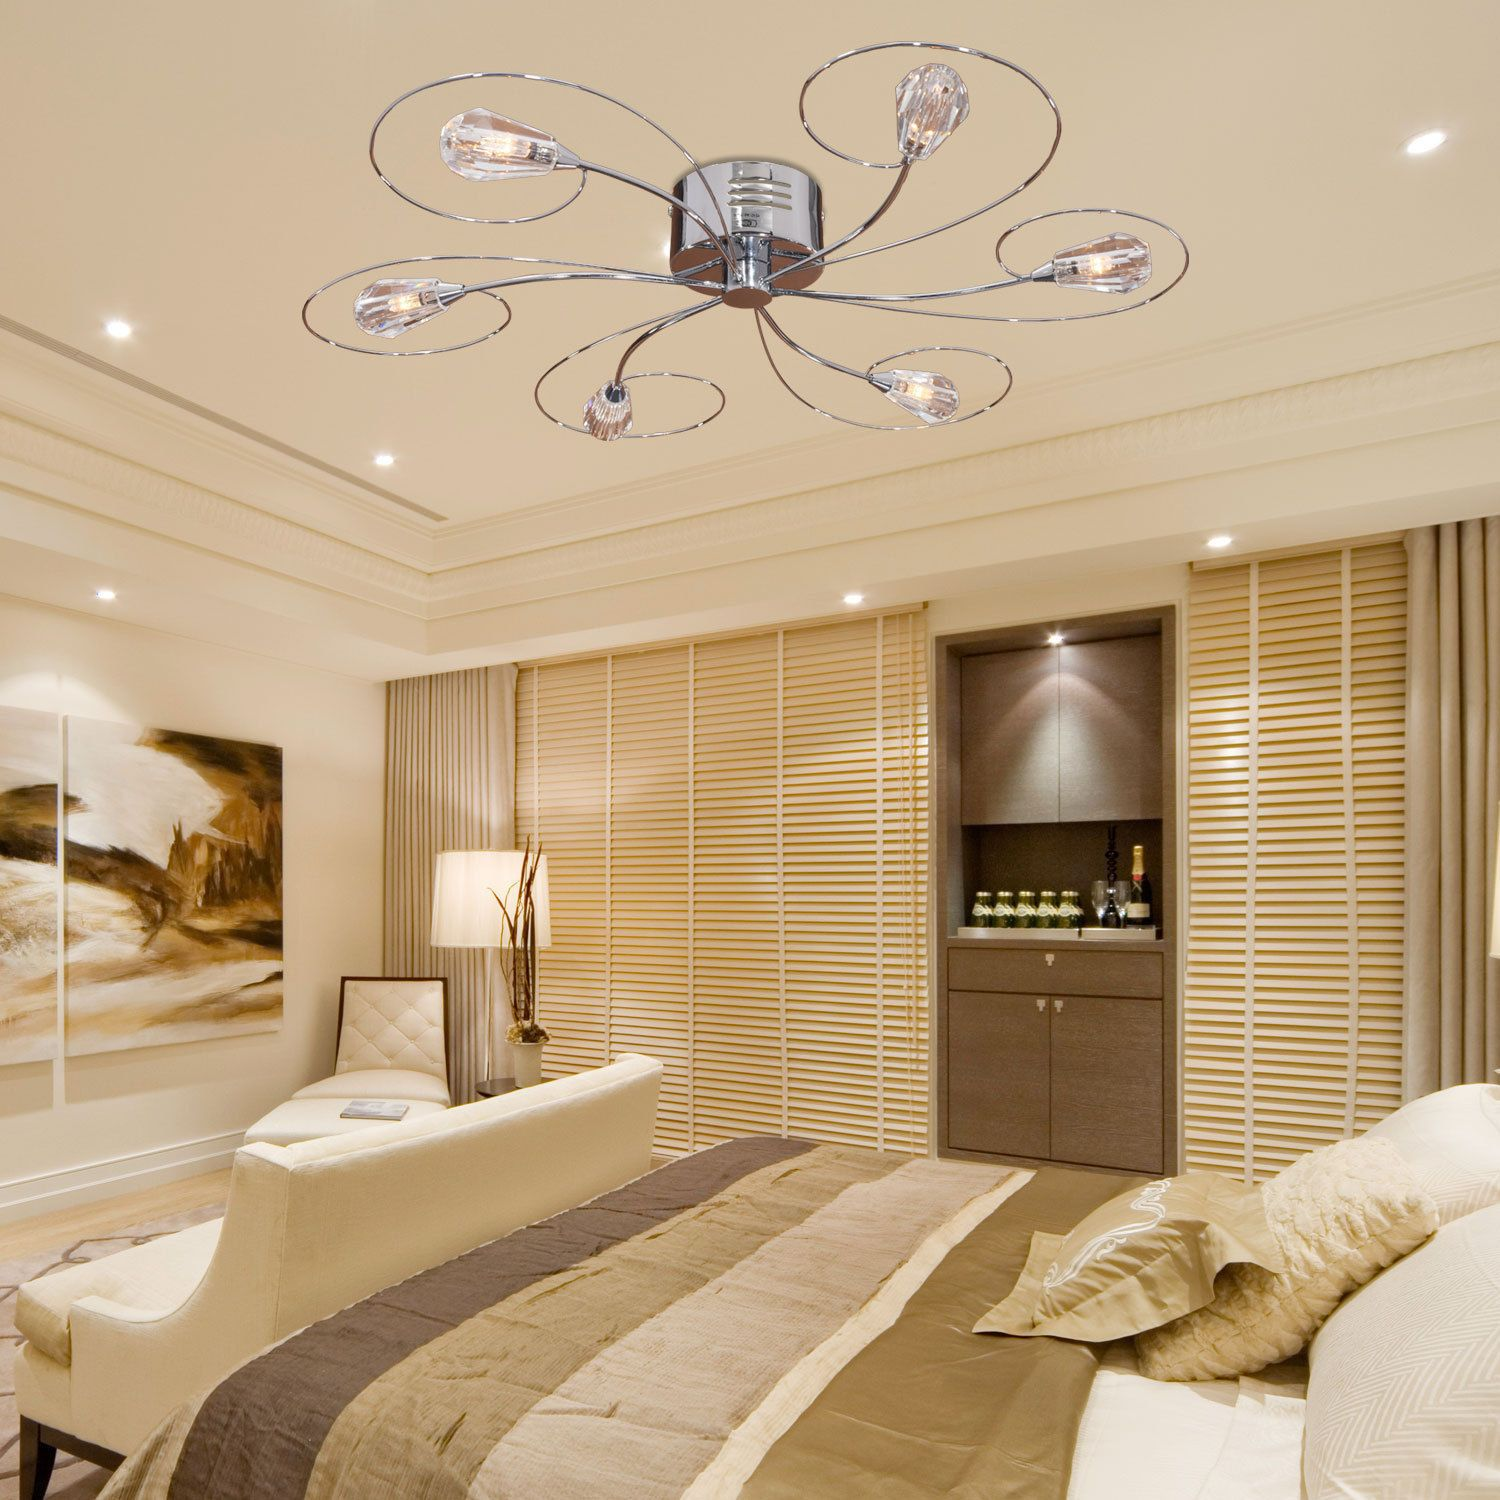 Unique bright chandelier ceiling fan for ceiling deocrating improvements ceiling fan Master bedroom ceiling fans with lights